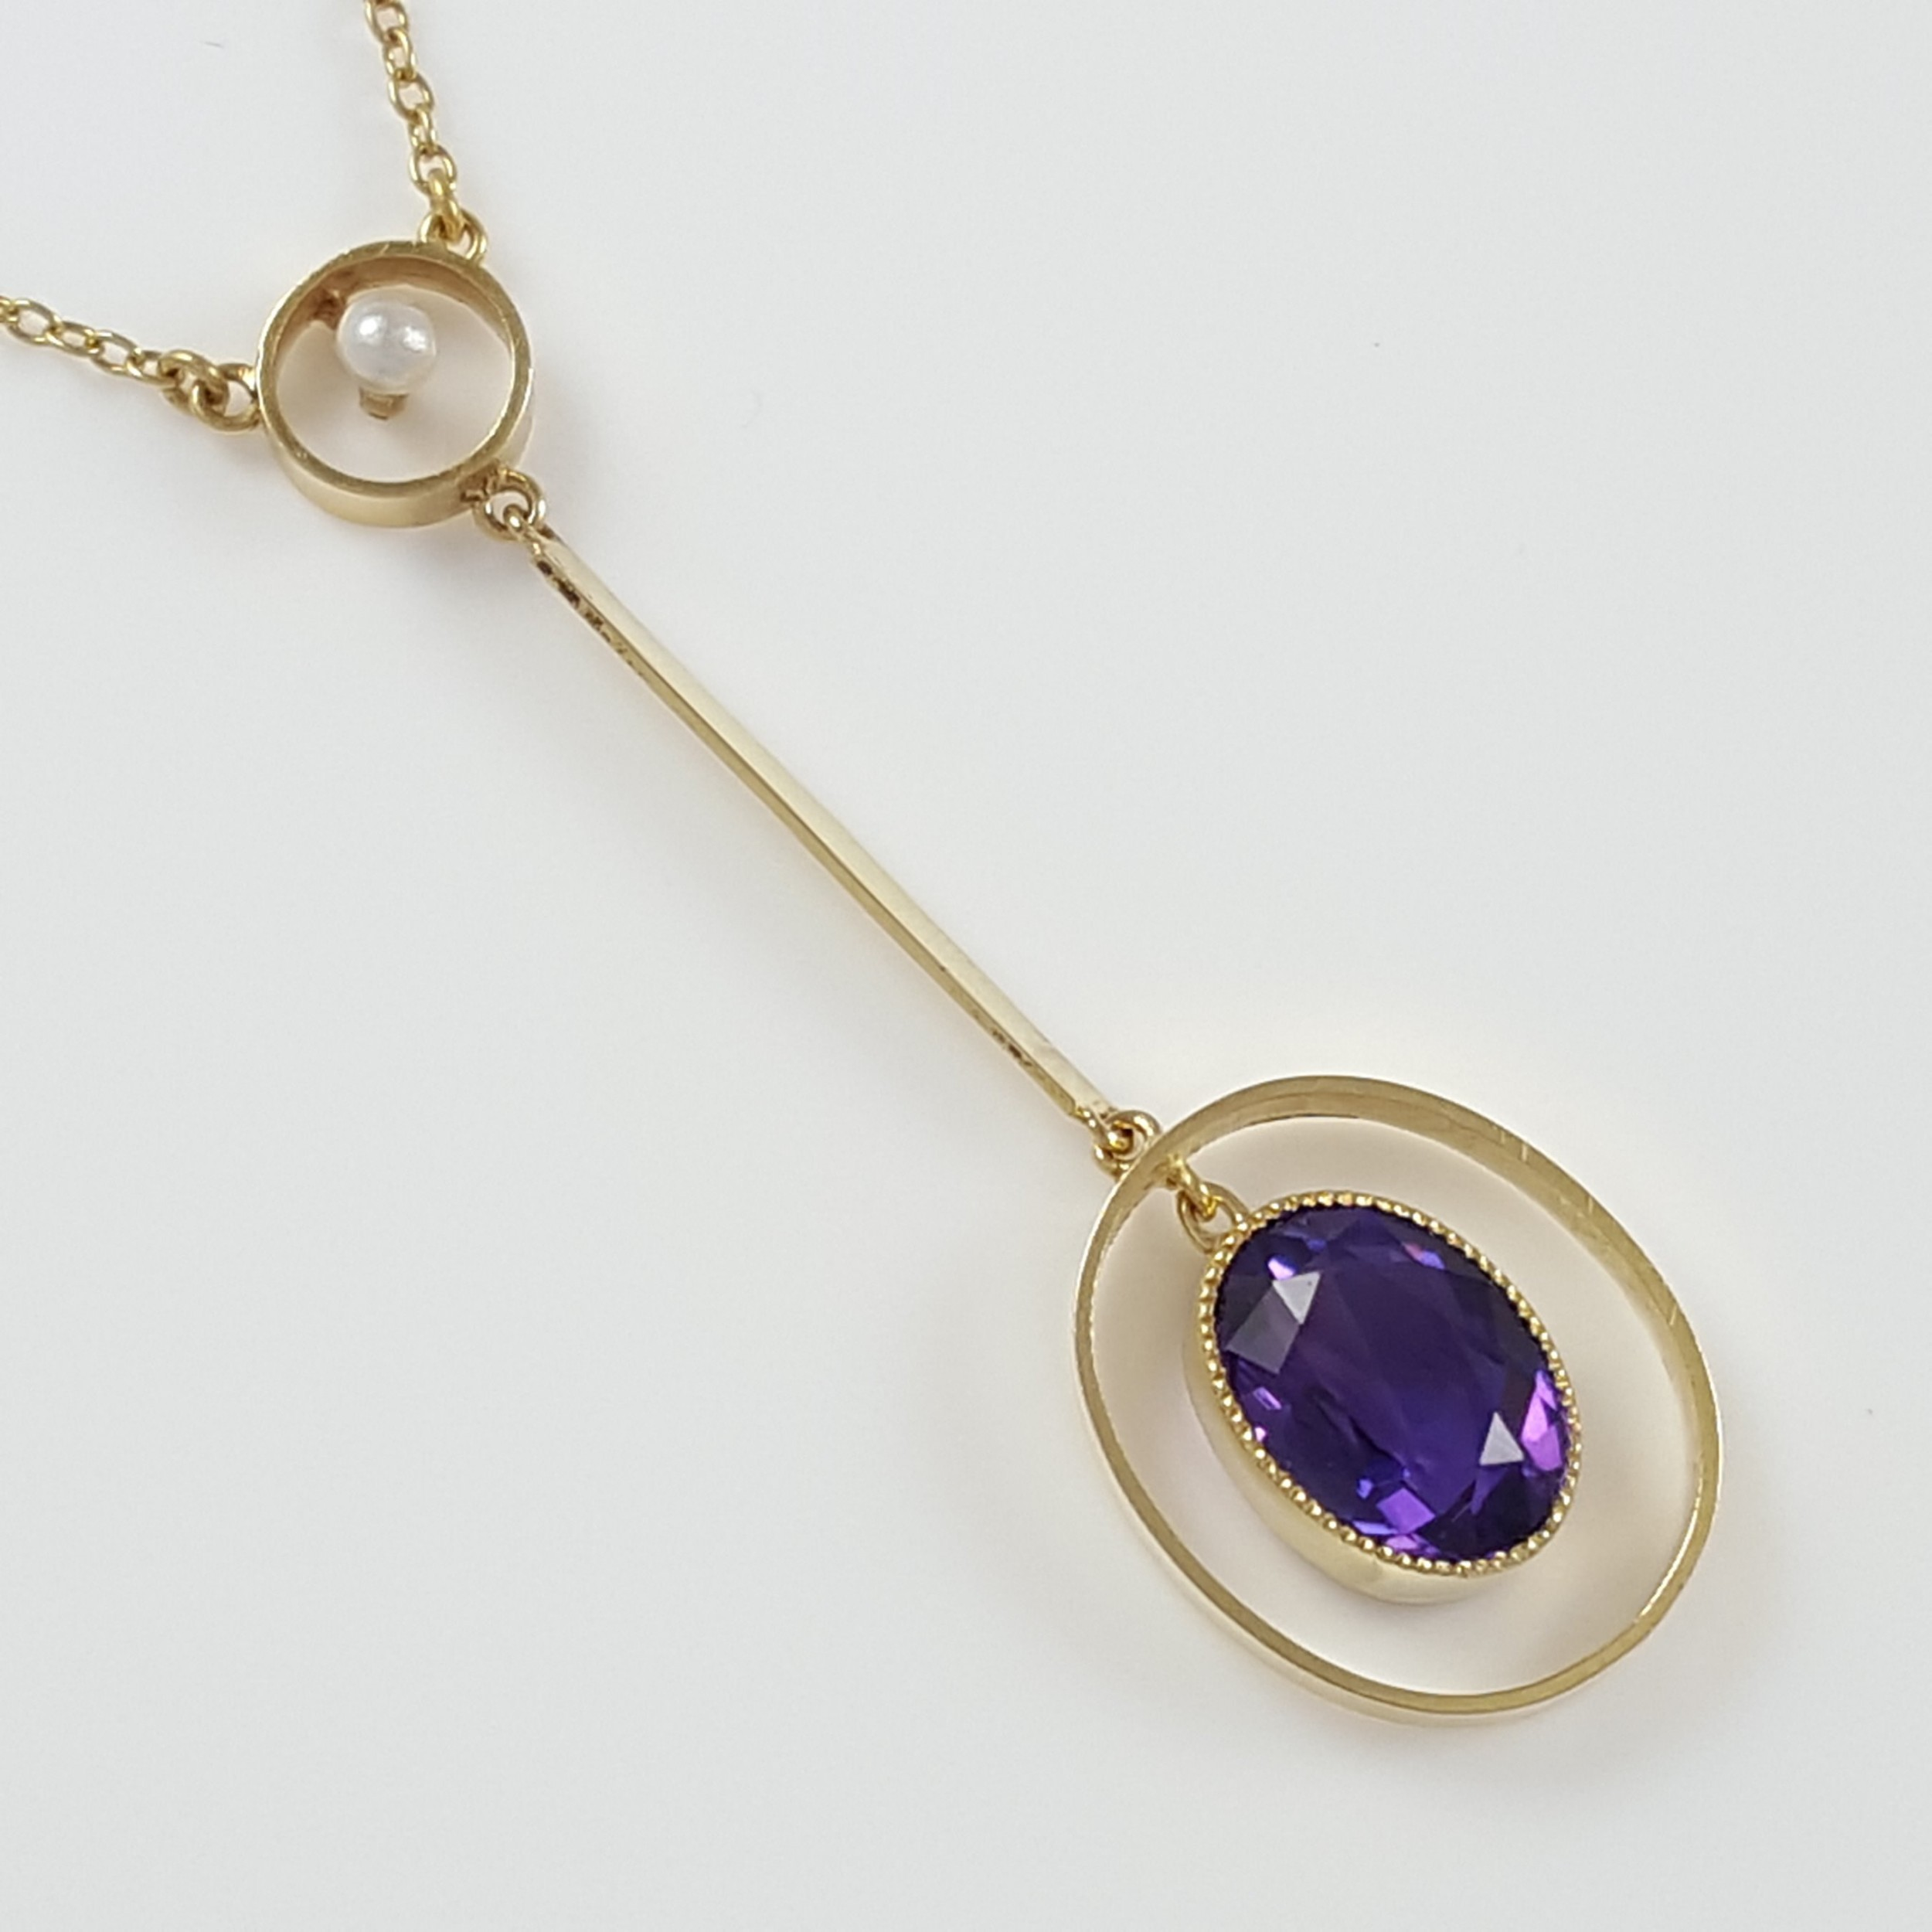 15ct yellow gold amethyst seed pearl lavalier pendant necklace circa 1900